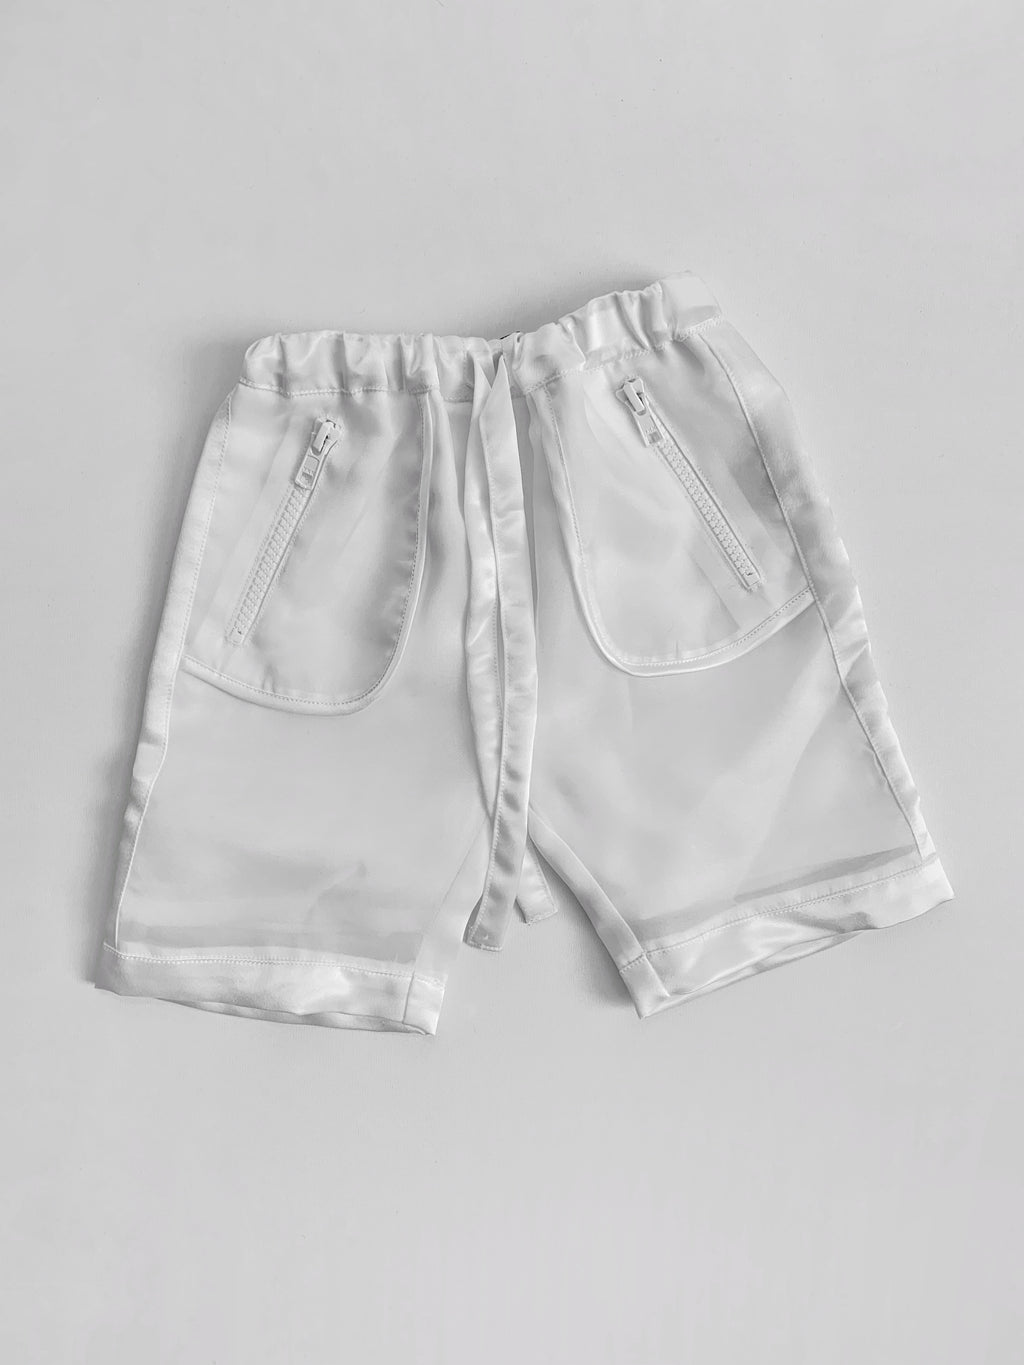 Half Light Pants (Kids)